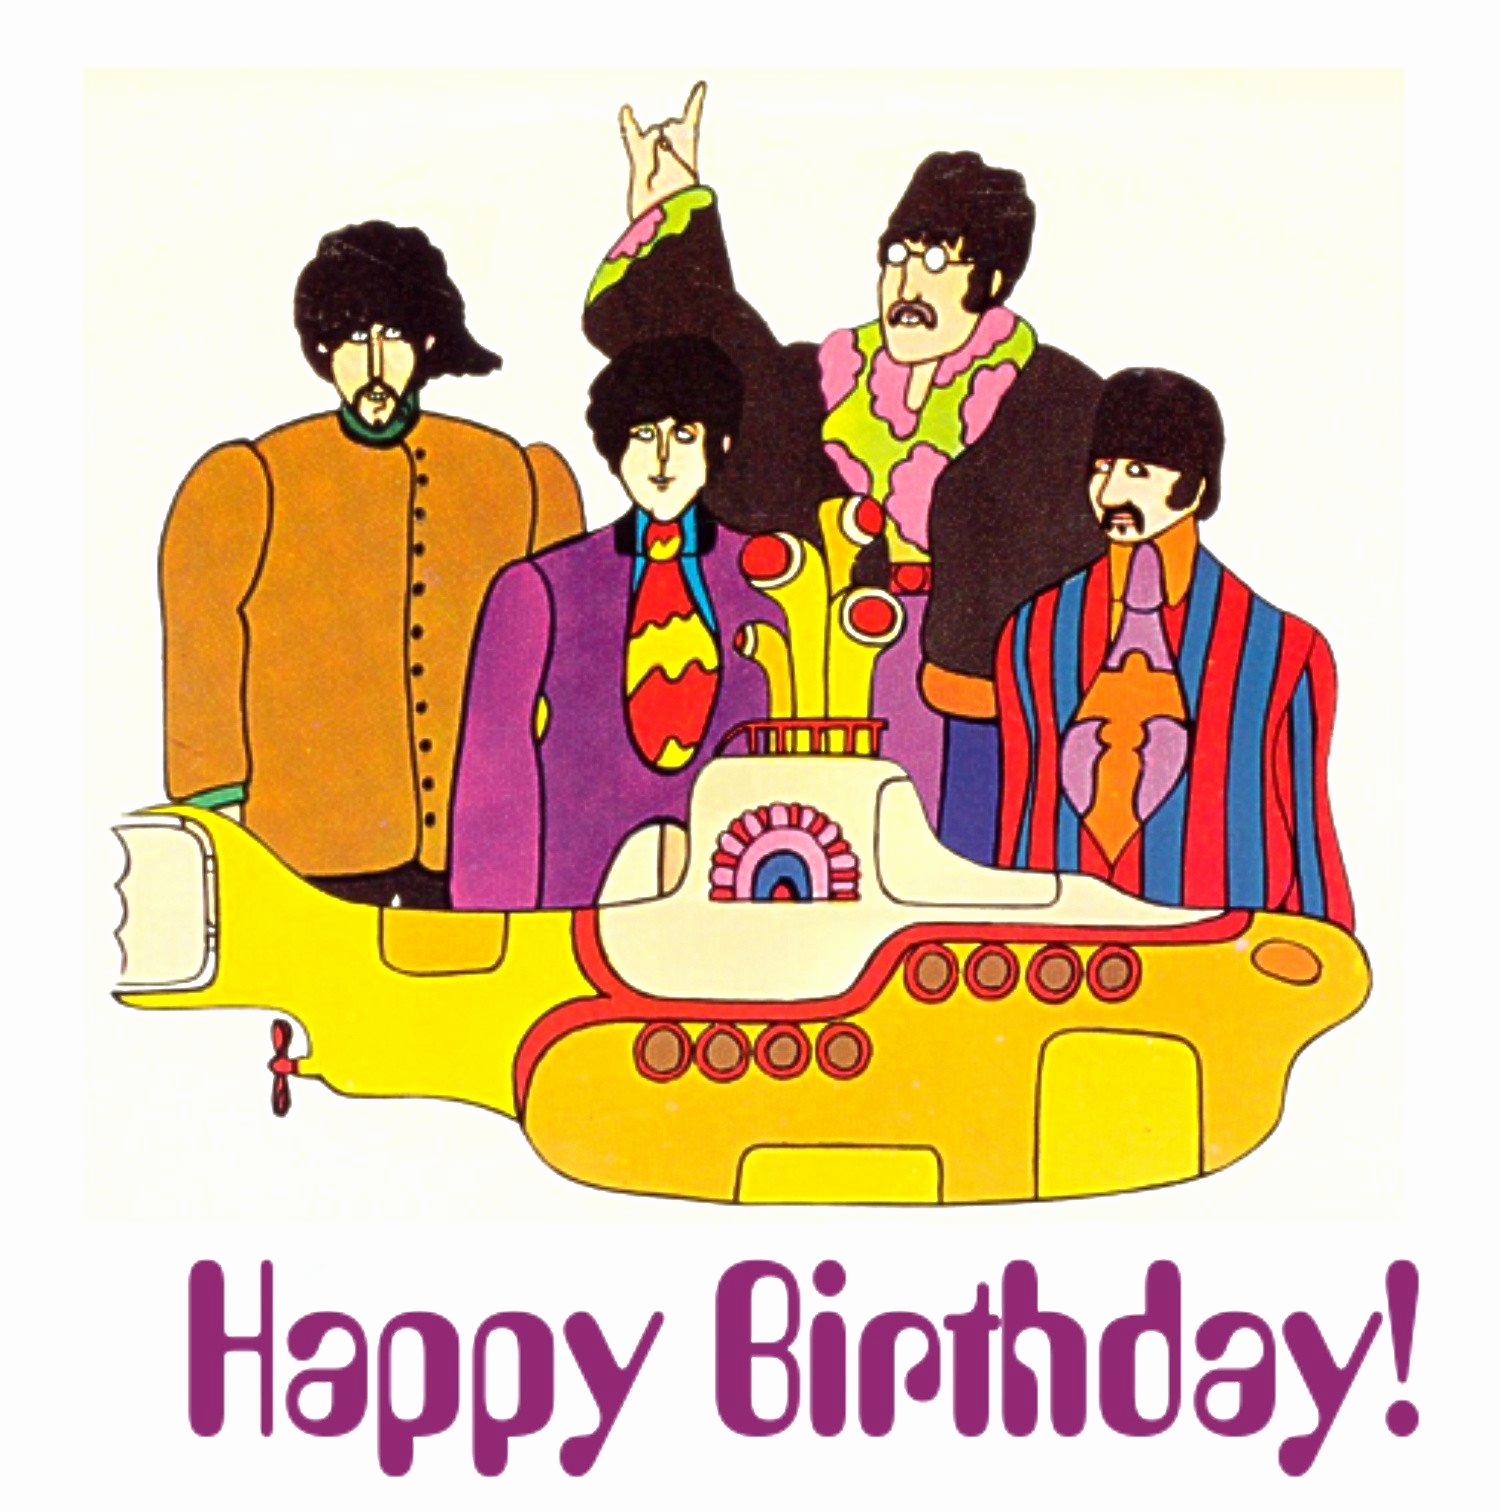 beatles birthday card ; rock-and-roll-birthday-cards-free-awesome-the-beatles-yellow-submarine-birthday-card-what-the-rock-of-rock-and-roll-birthday-cards-free